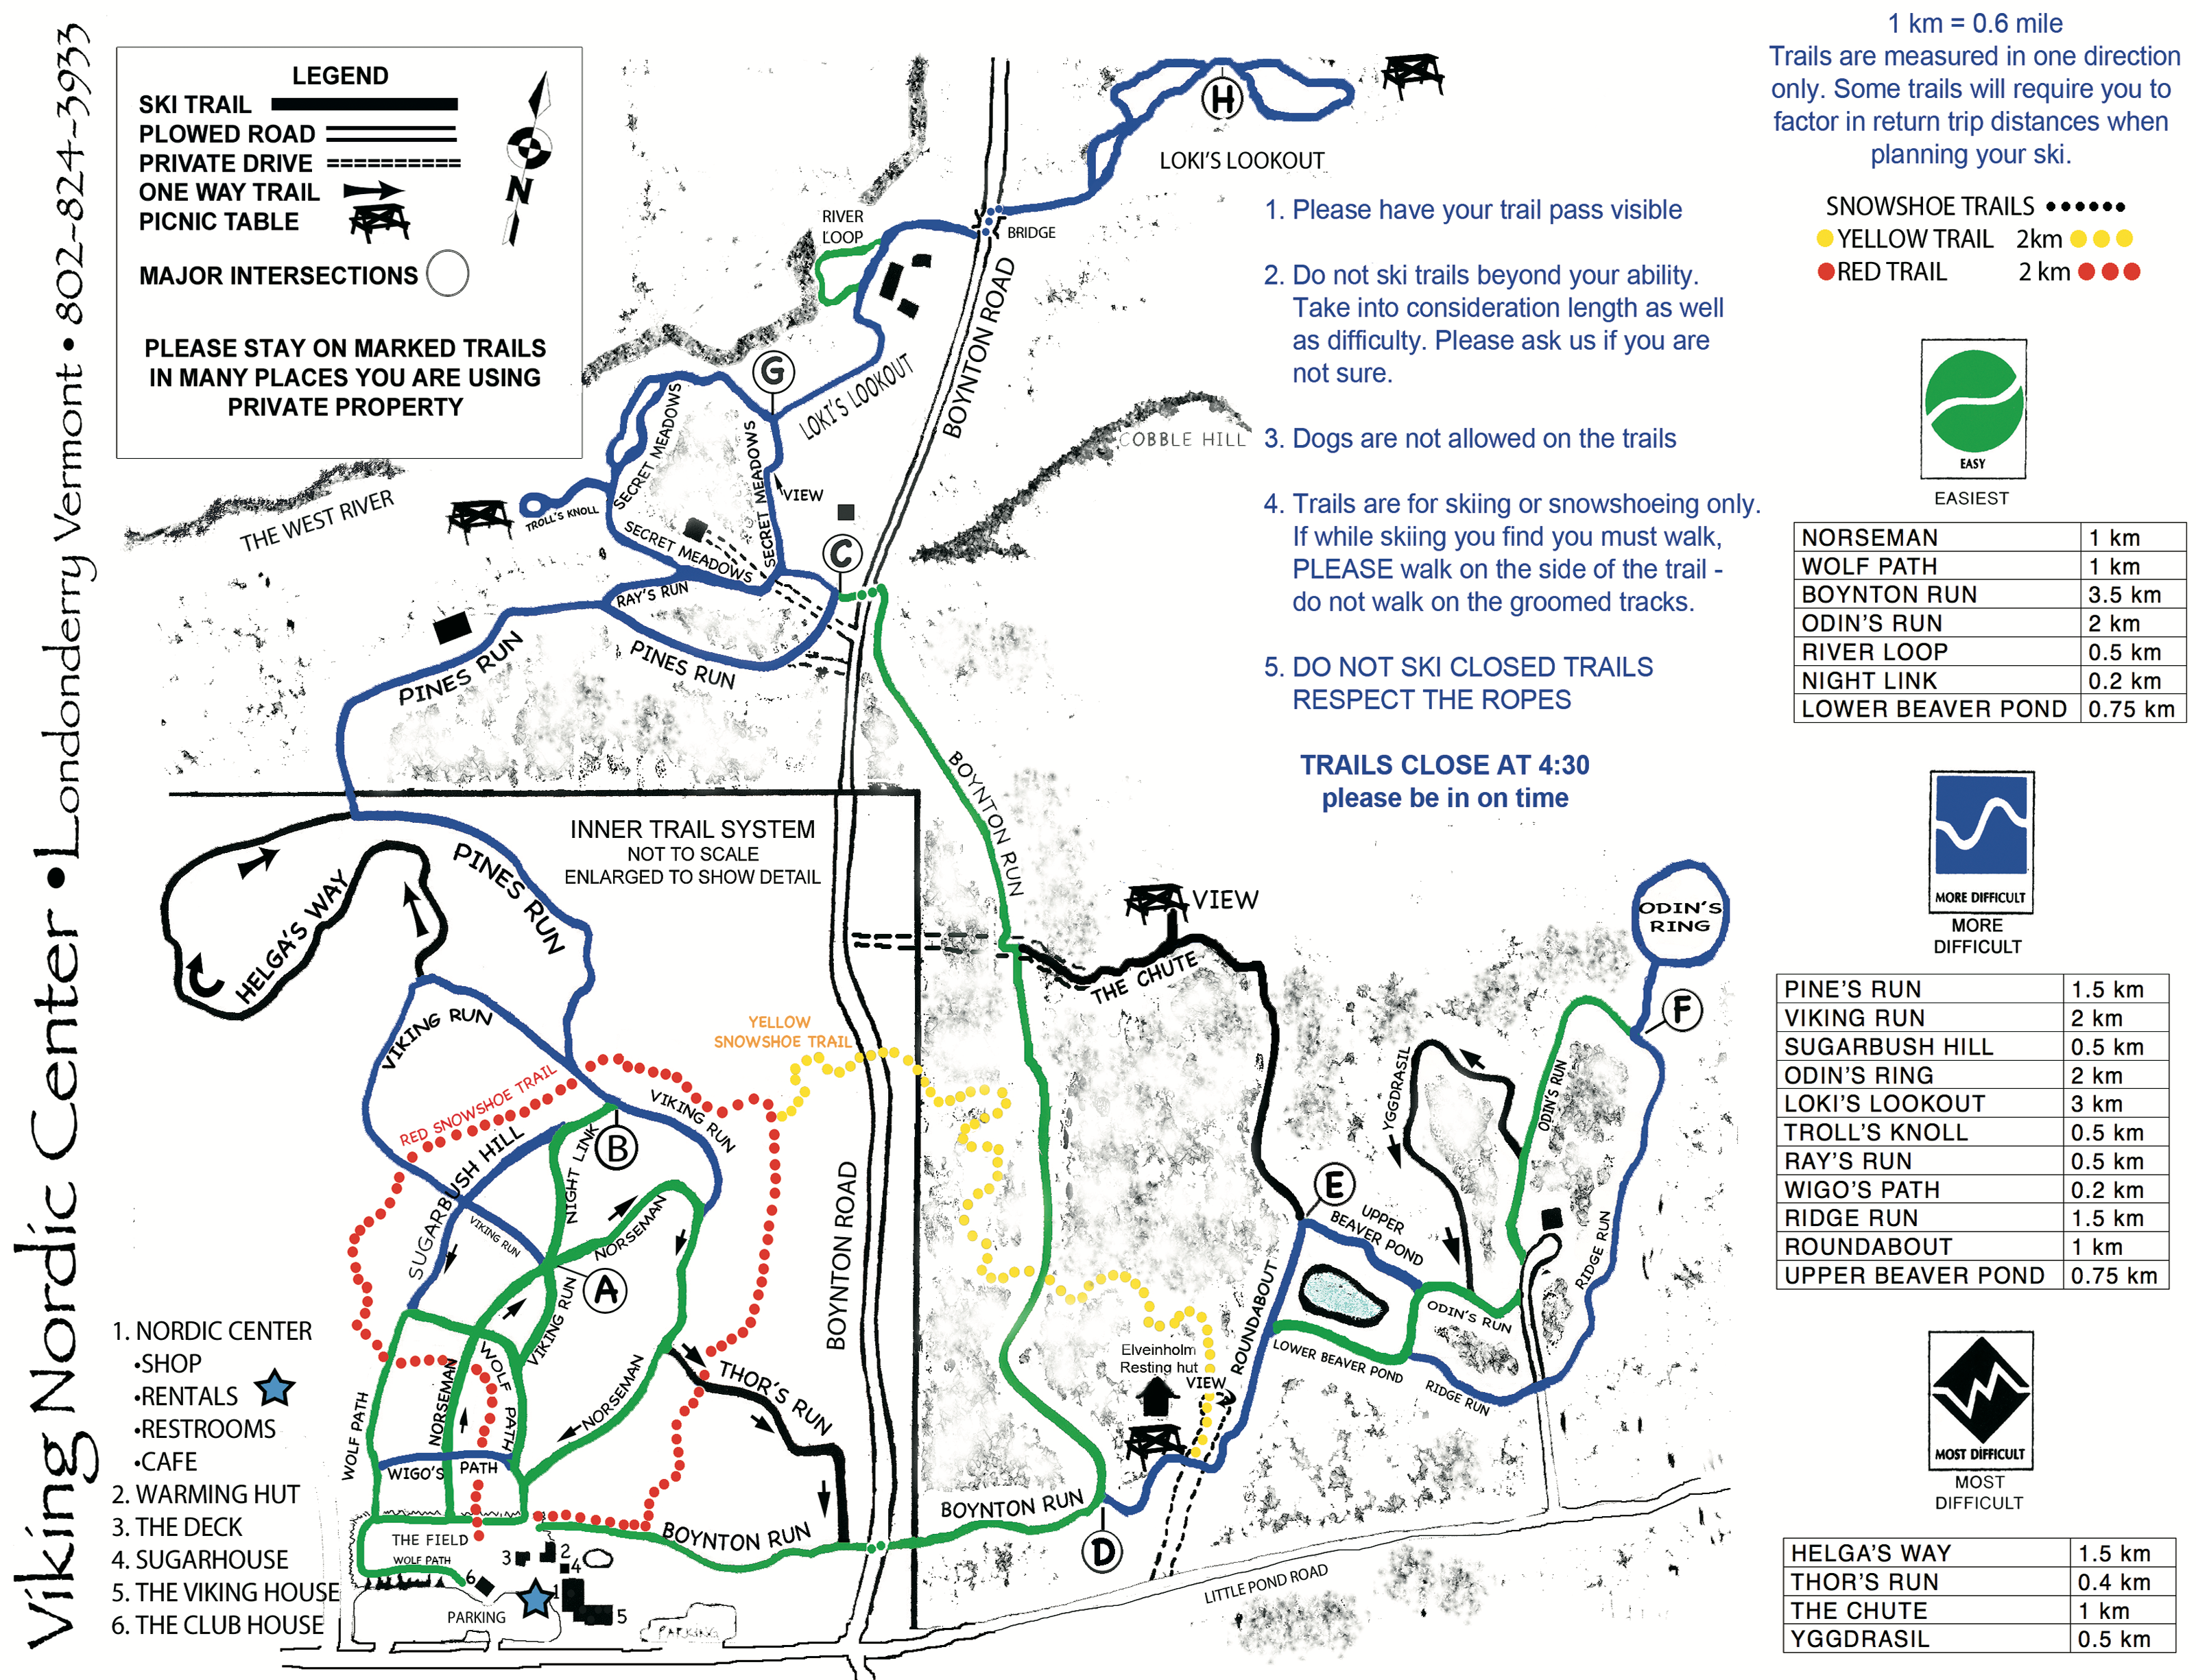 Trail Map & Descriptions